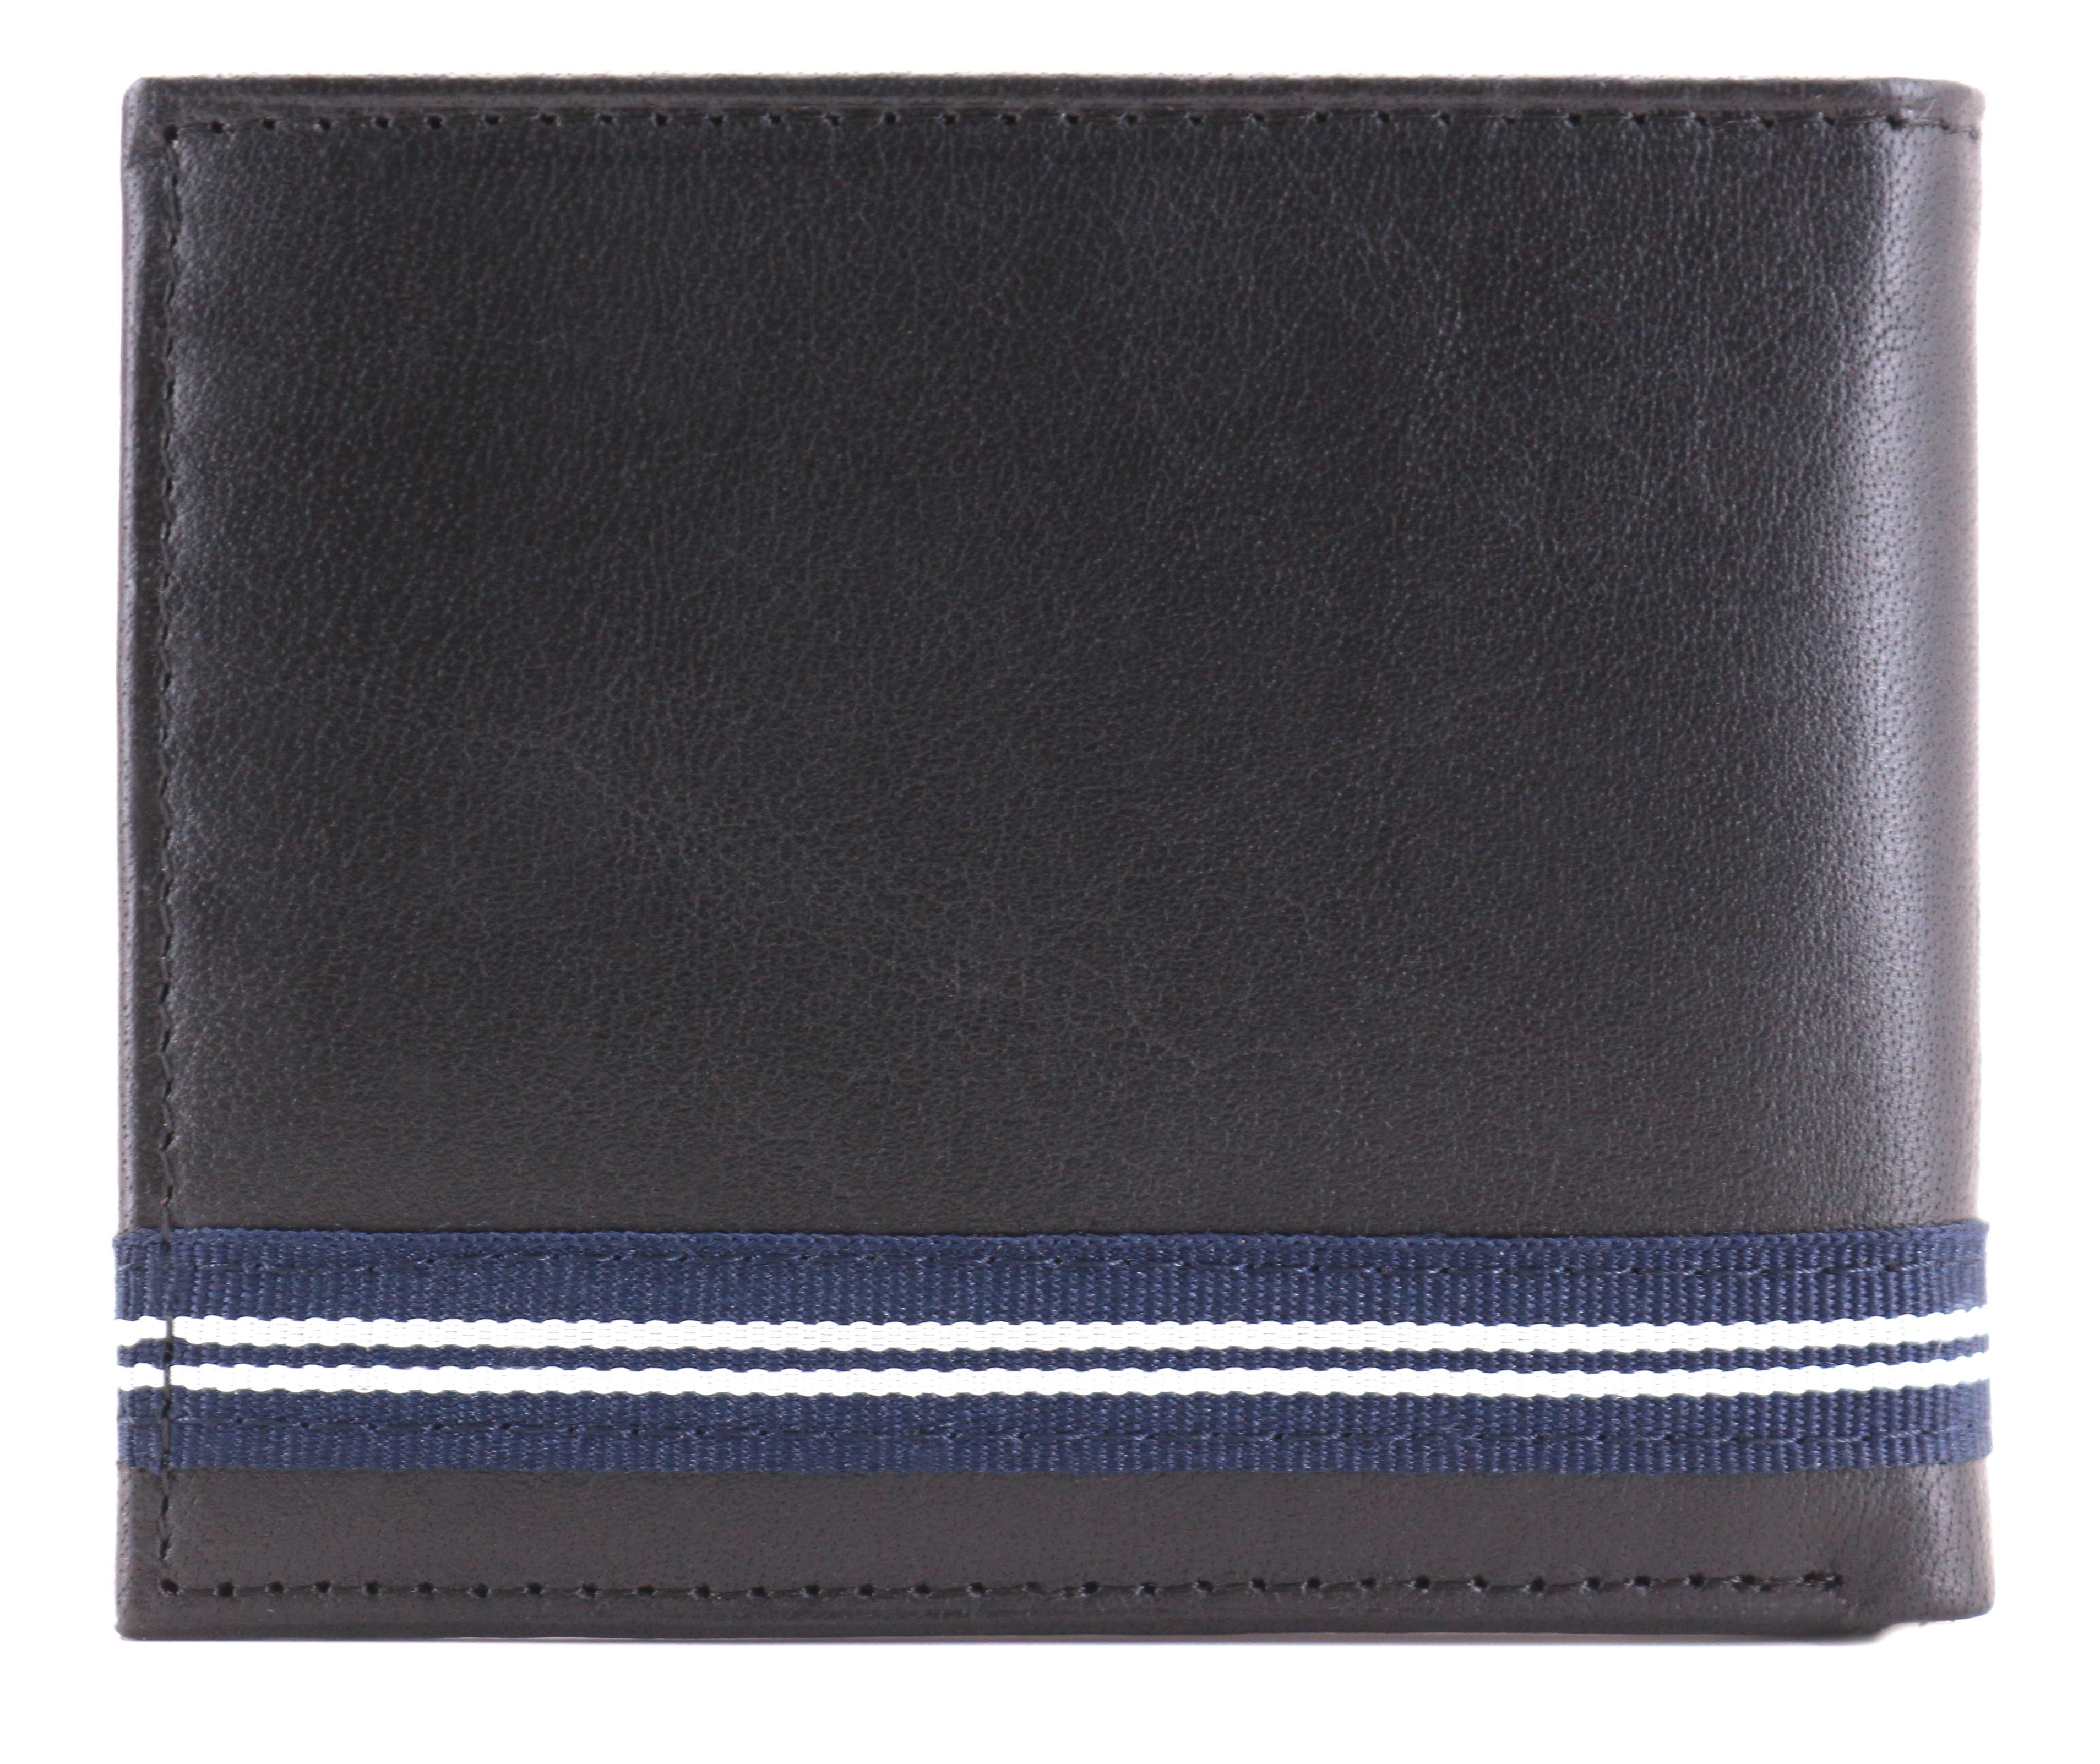 Nautica-Men-039-s-Genuine-Leather-Credit-Card-ID-Double-Billfold-Passcase-Wallet thumbnail 3